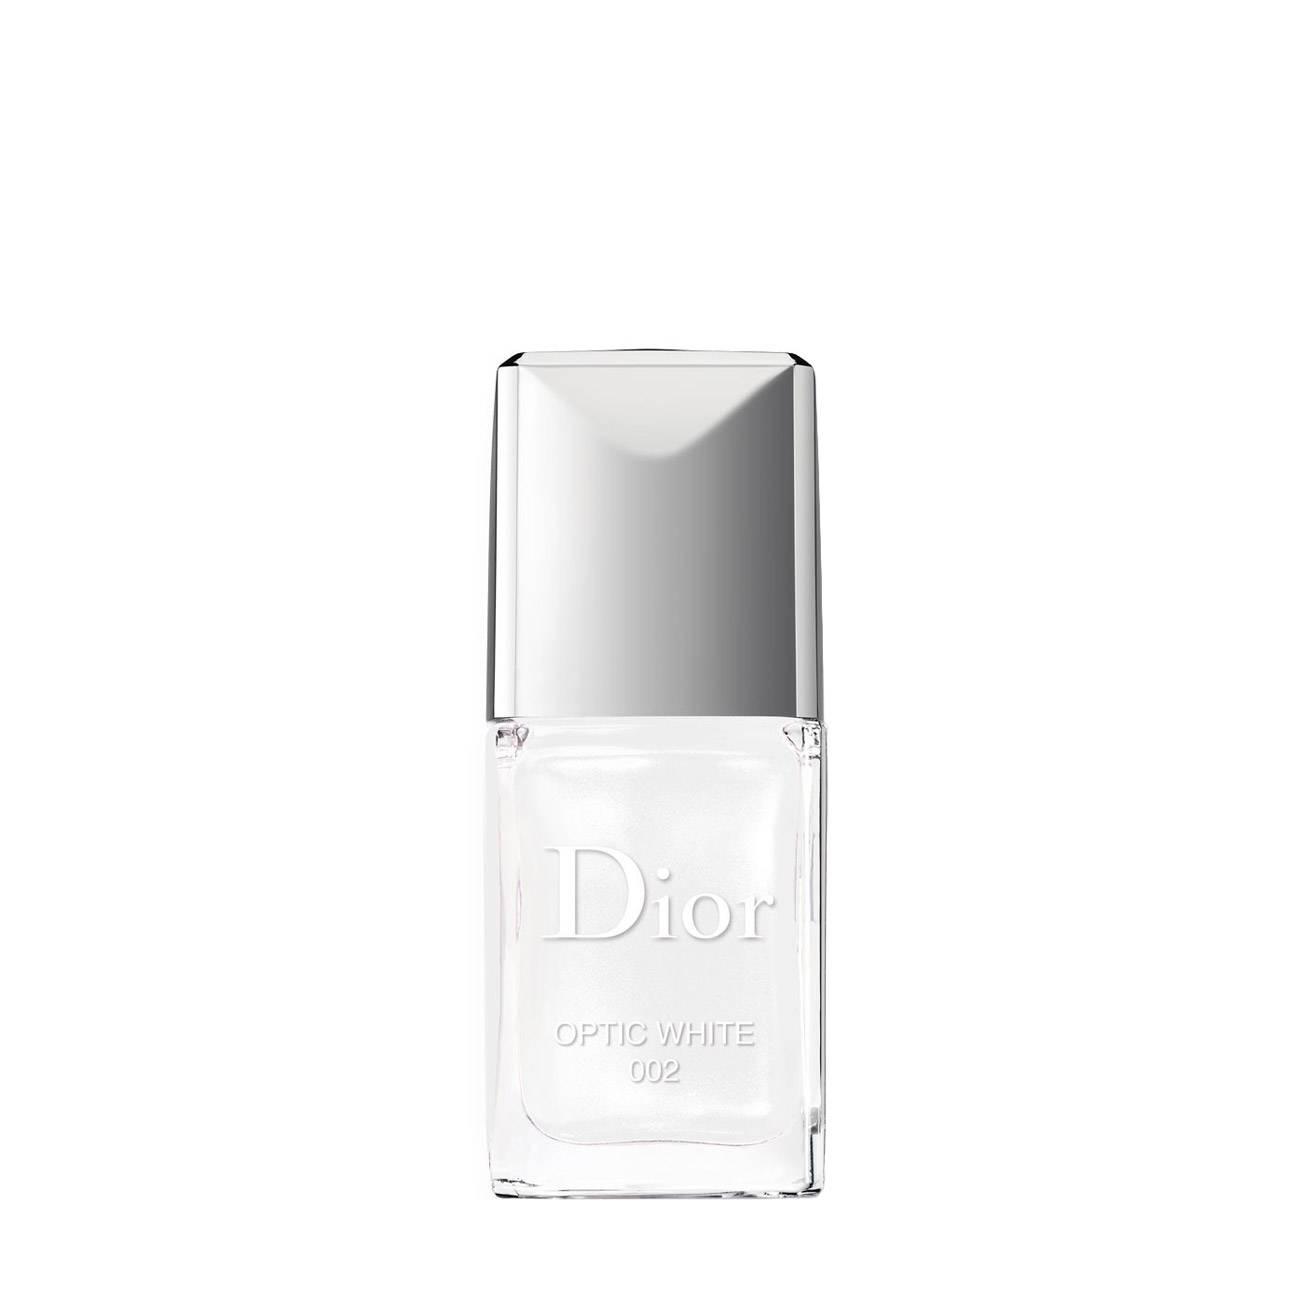 Vernis 02 10 Ml Dior imagine 2021 bestvalue.eu